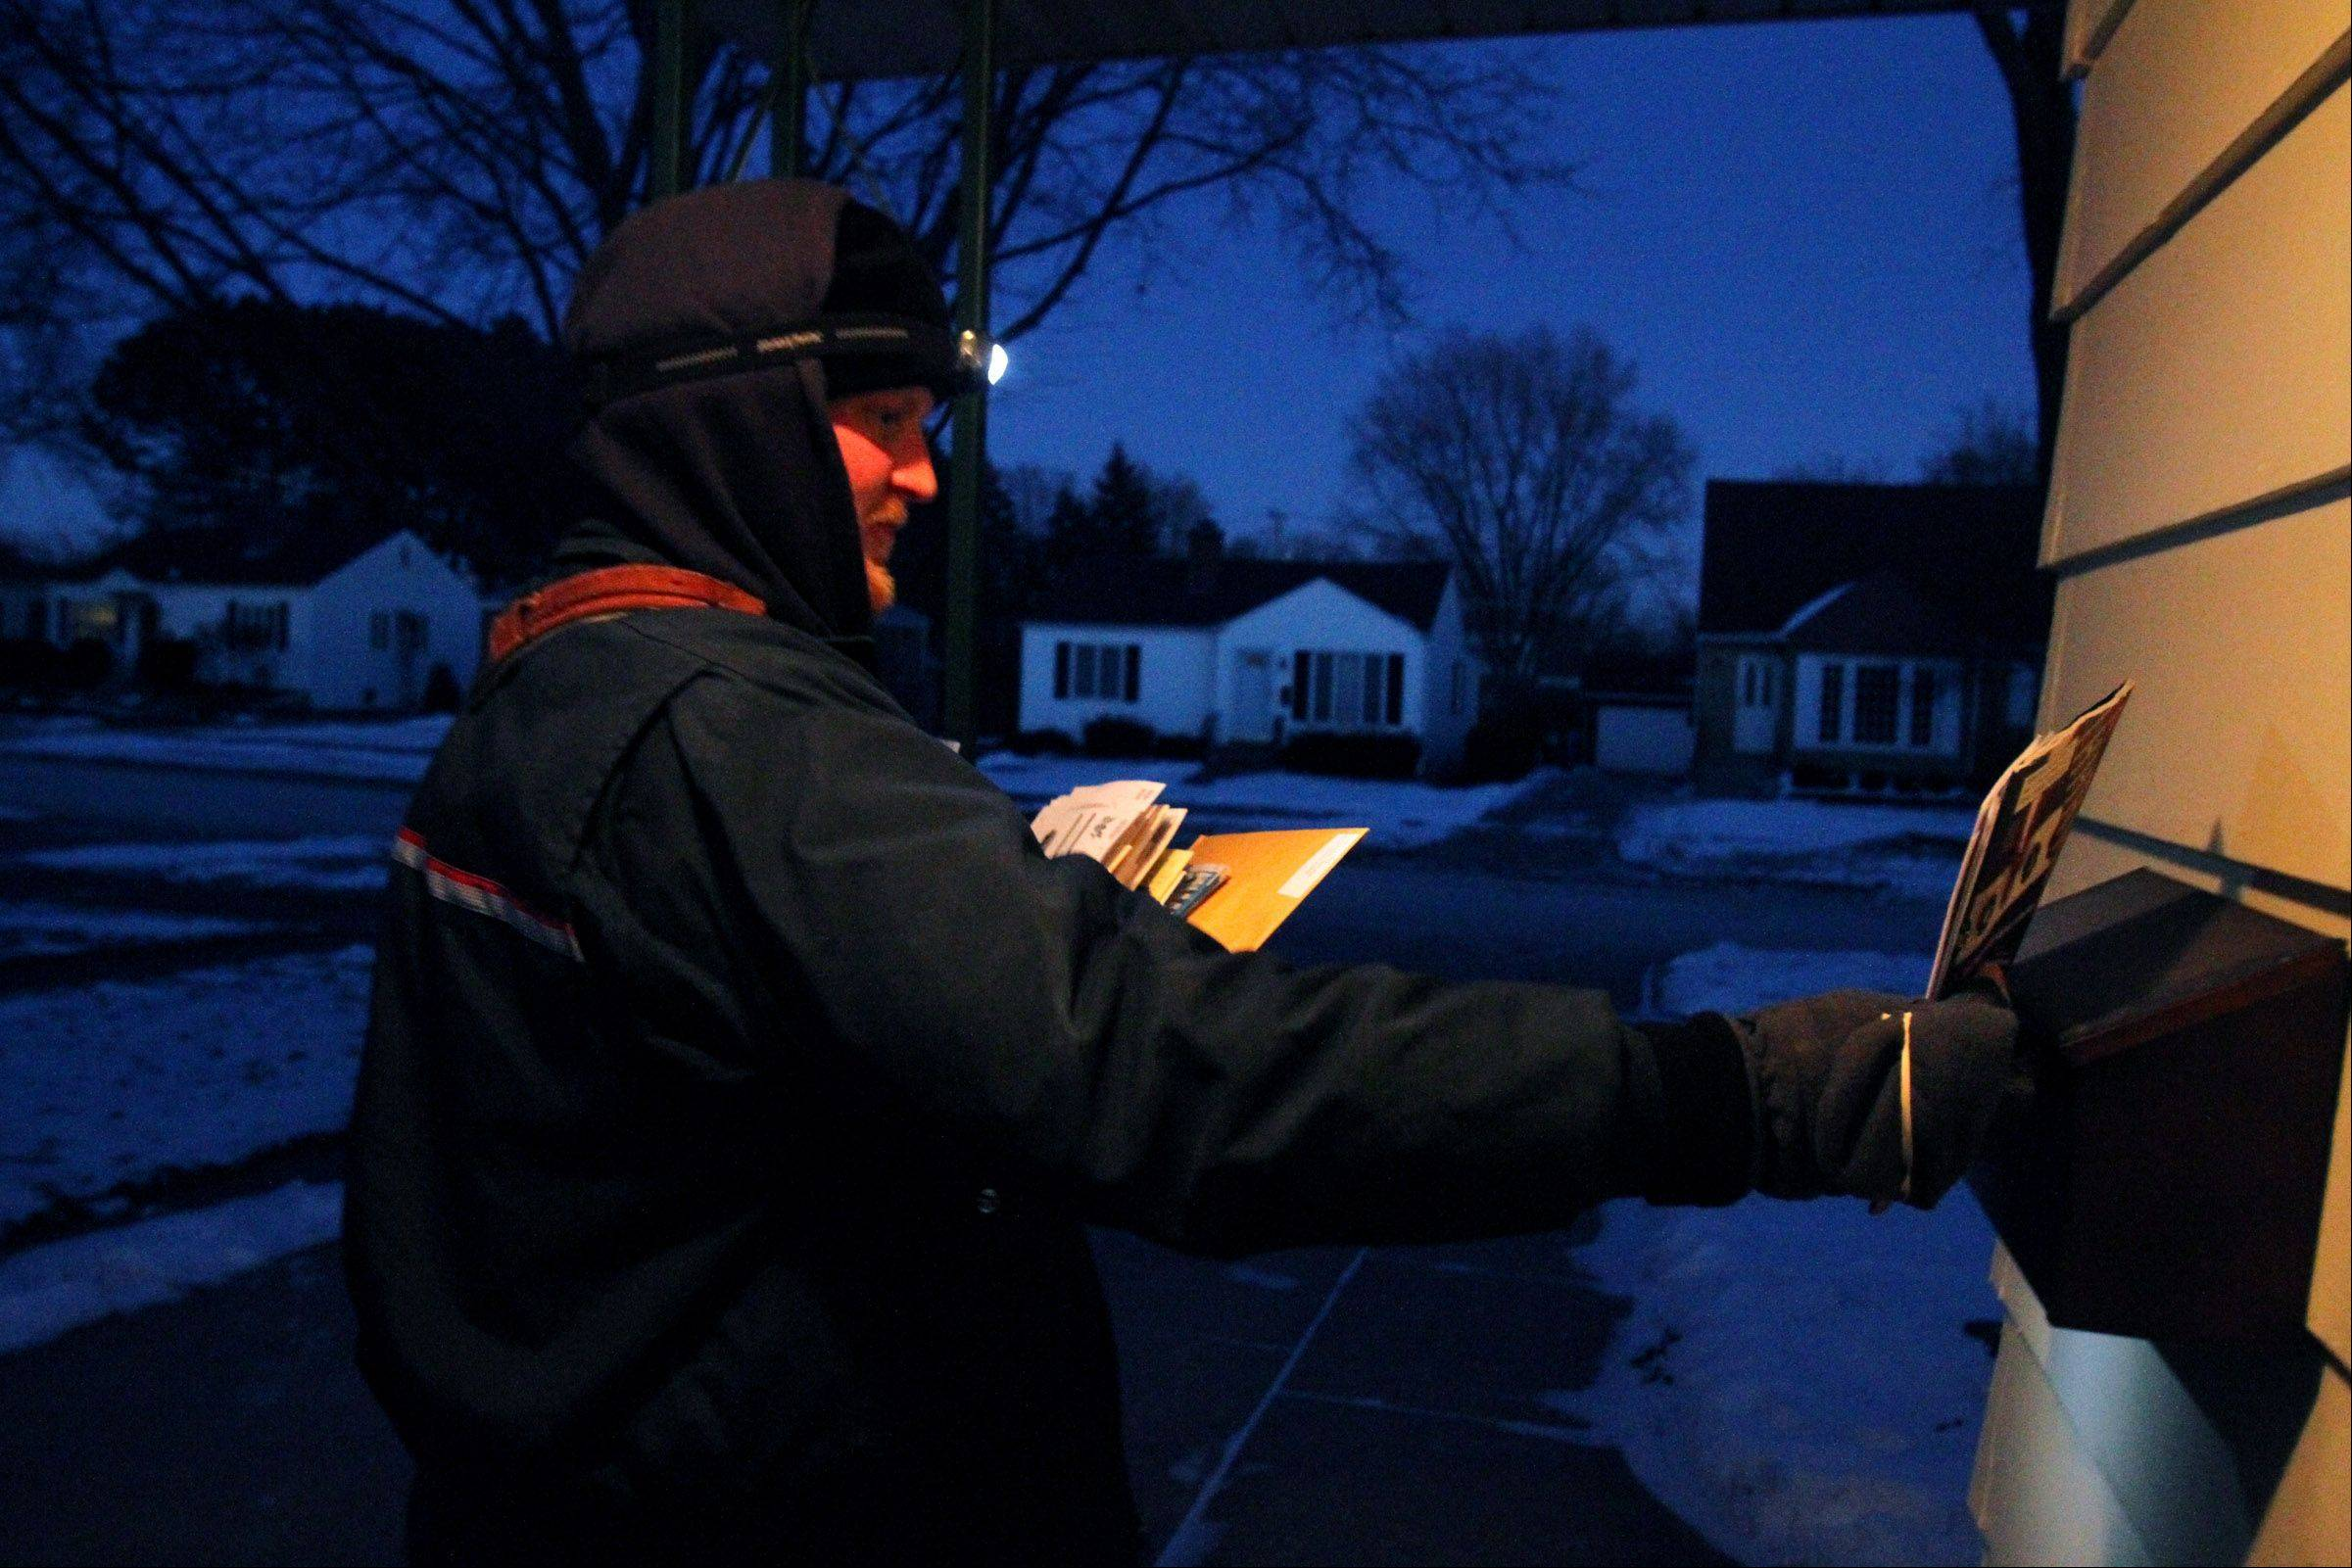 Mount Prospect postal carrier Jacob Tagge wears a headlamp while delivering mail to homes just east of the Mount Prospect Post Office between 5 and 6 p.m. on a winter day.